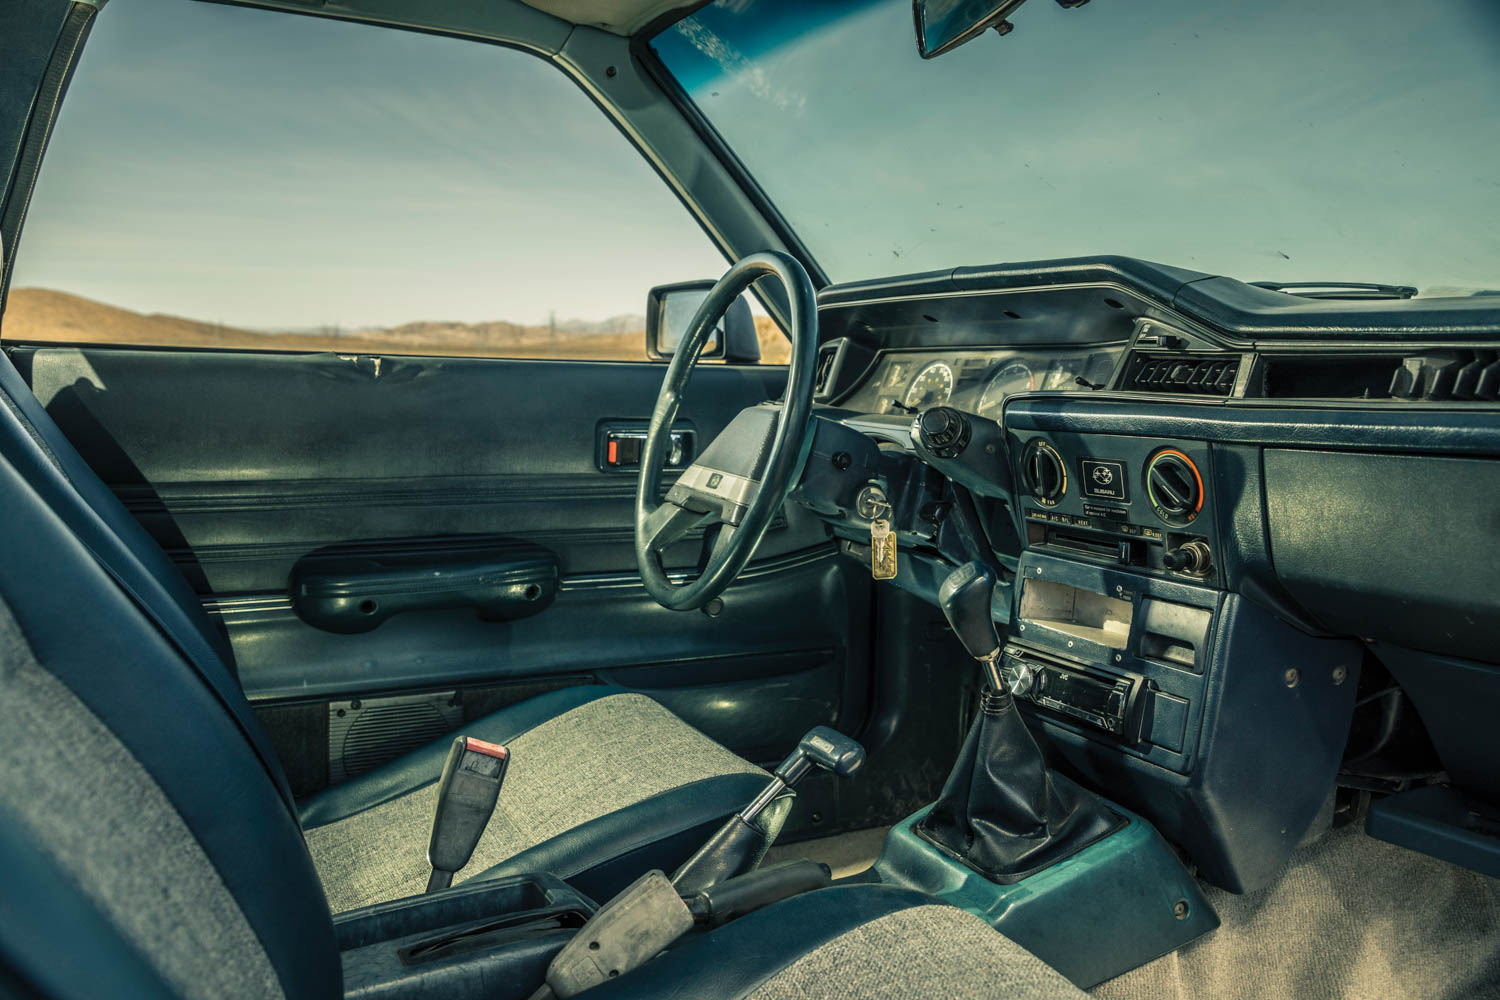 The Subaru dash (far left) bears the scars of homemade improvements.